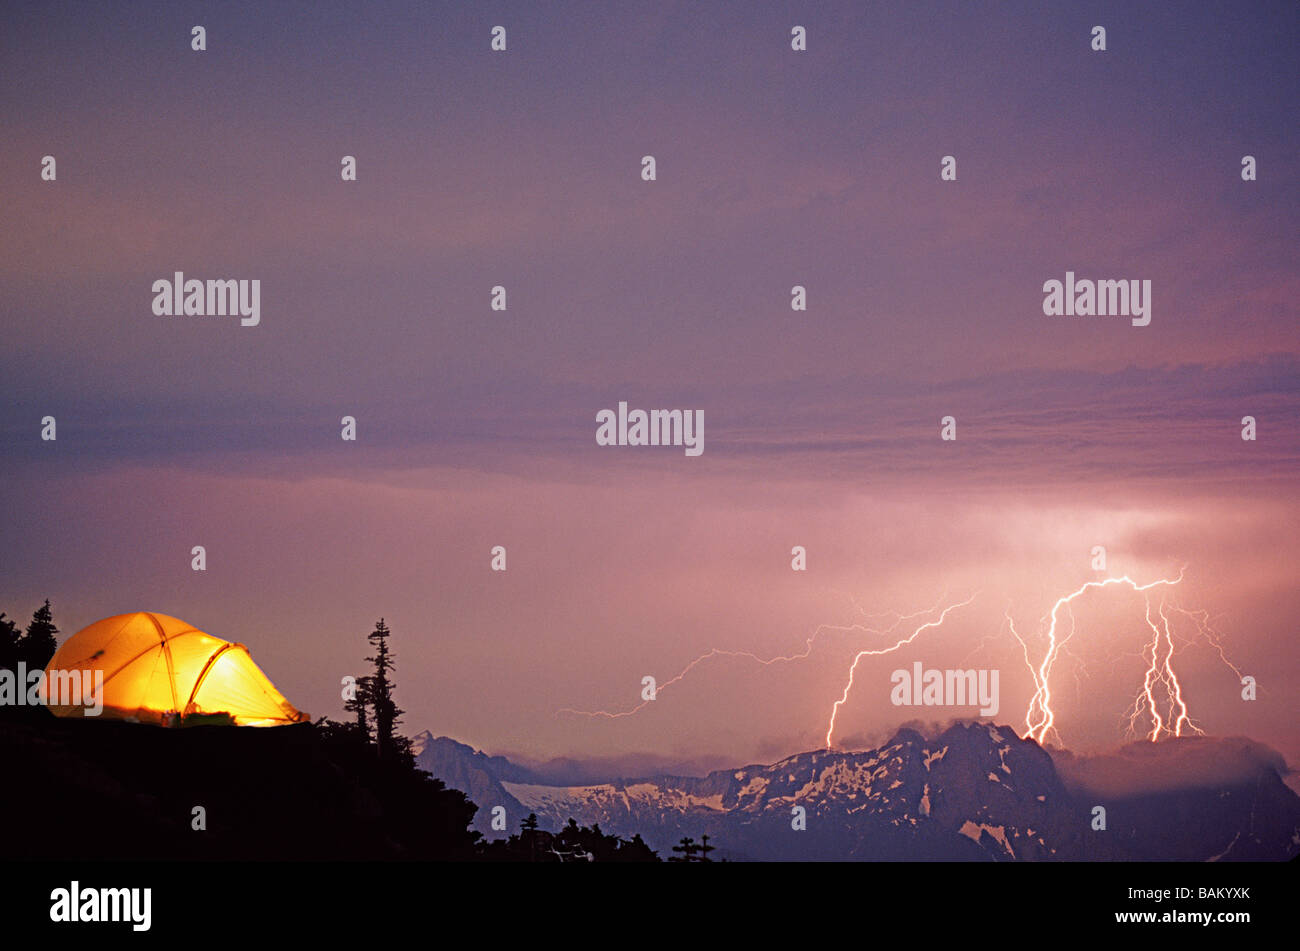 Lightning storm and tent at sloan peak - Stock Image